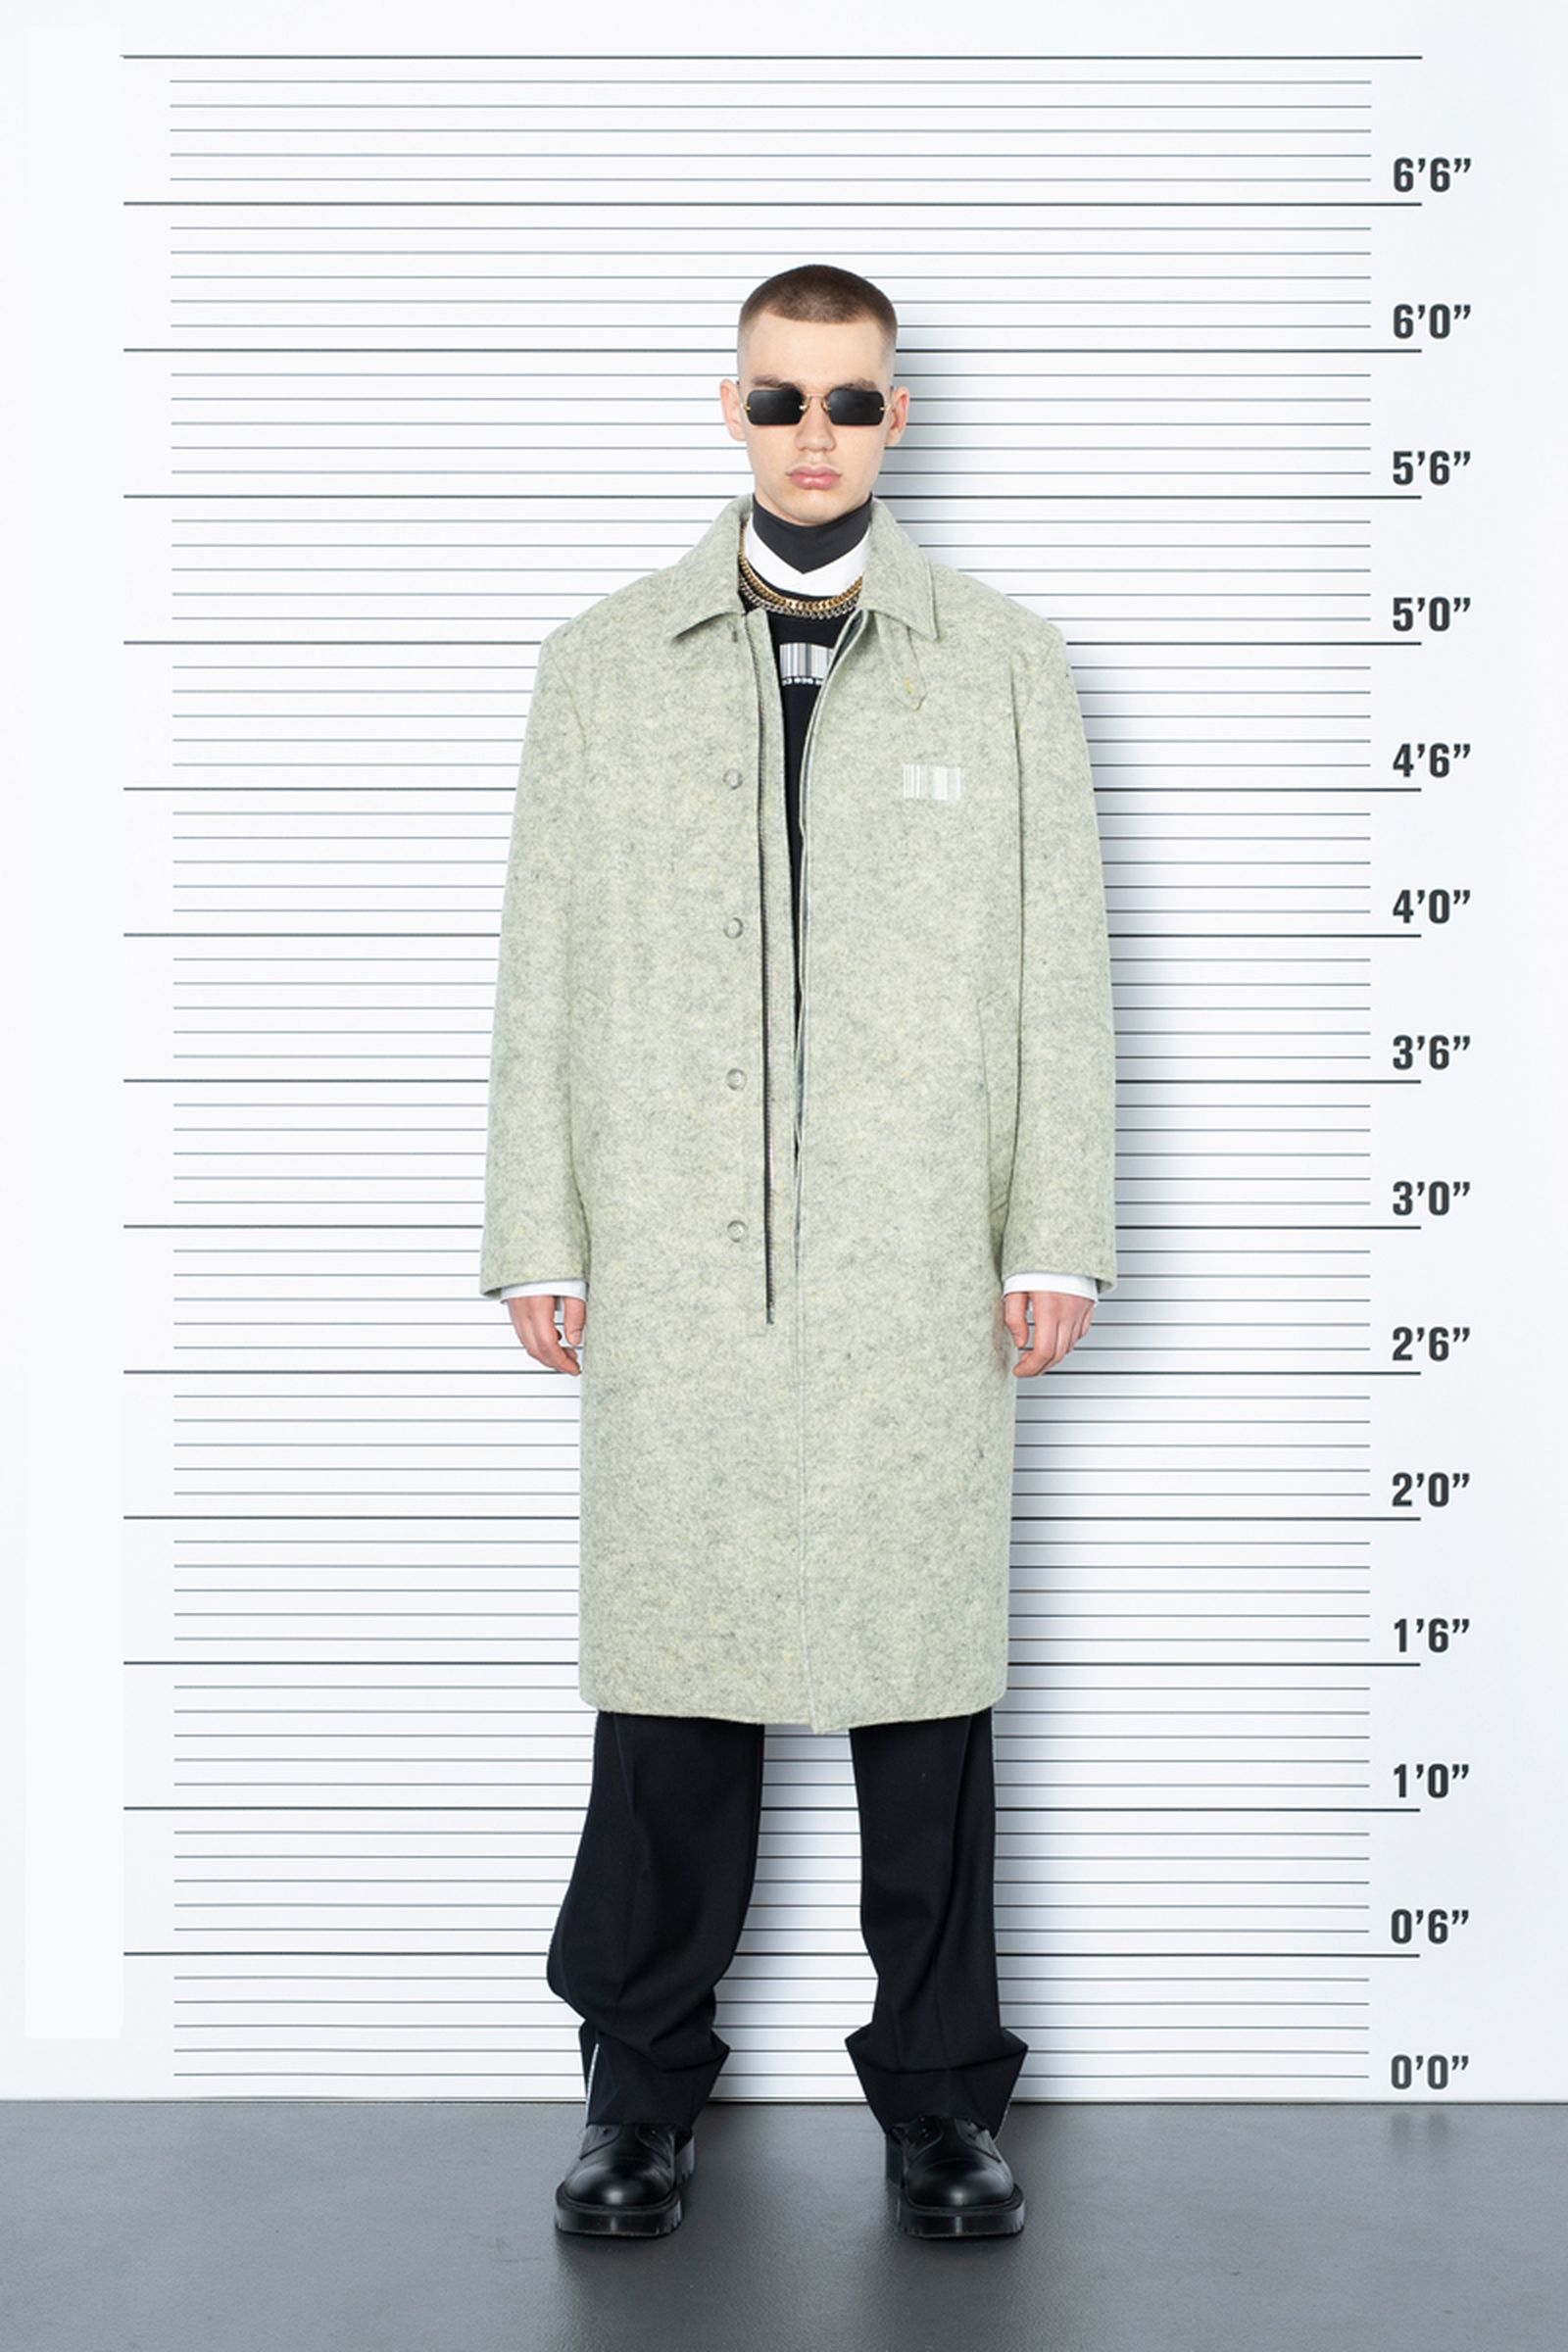 vetements-vtmnts-ss22-collection-lookbook- (19)